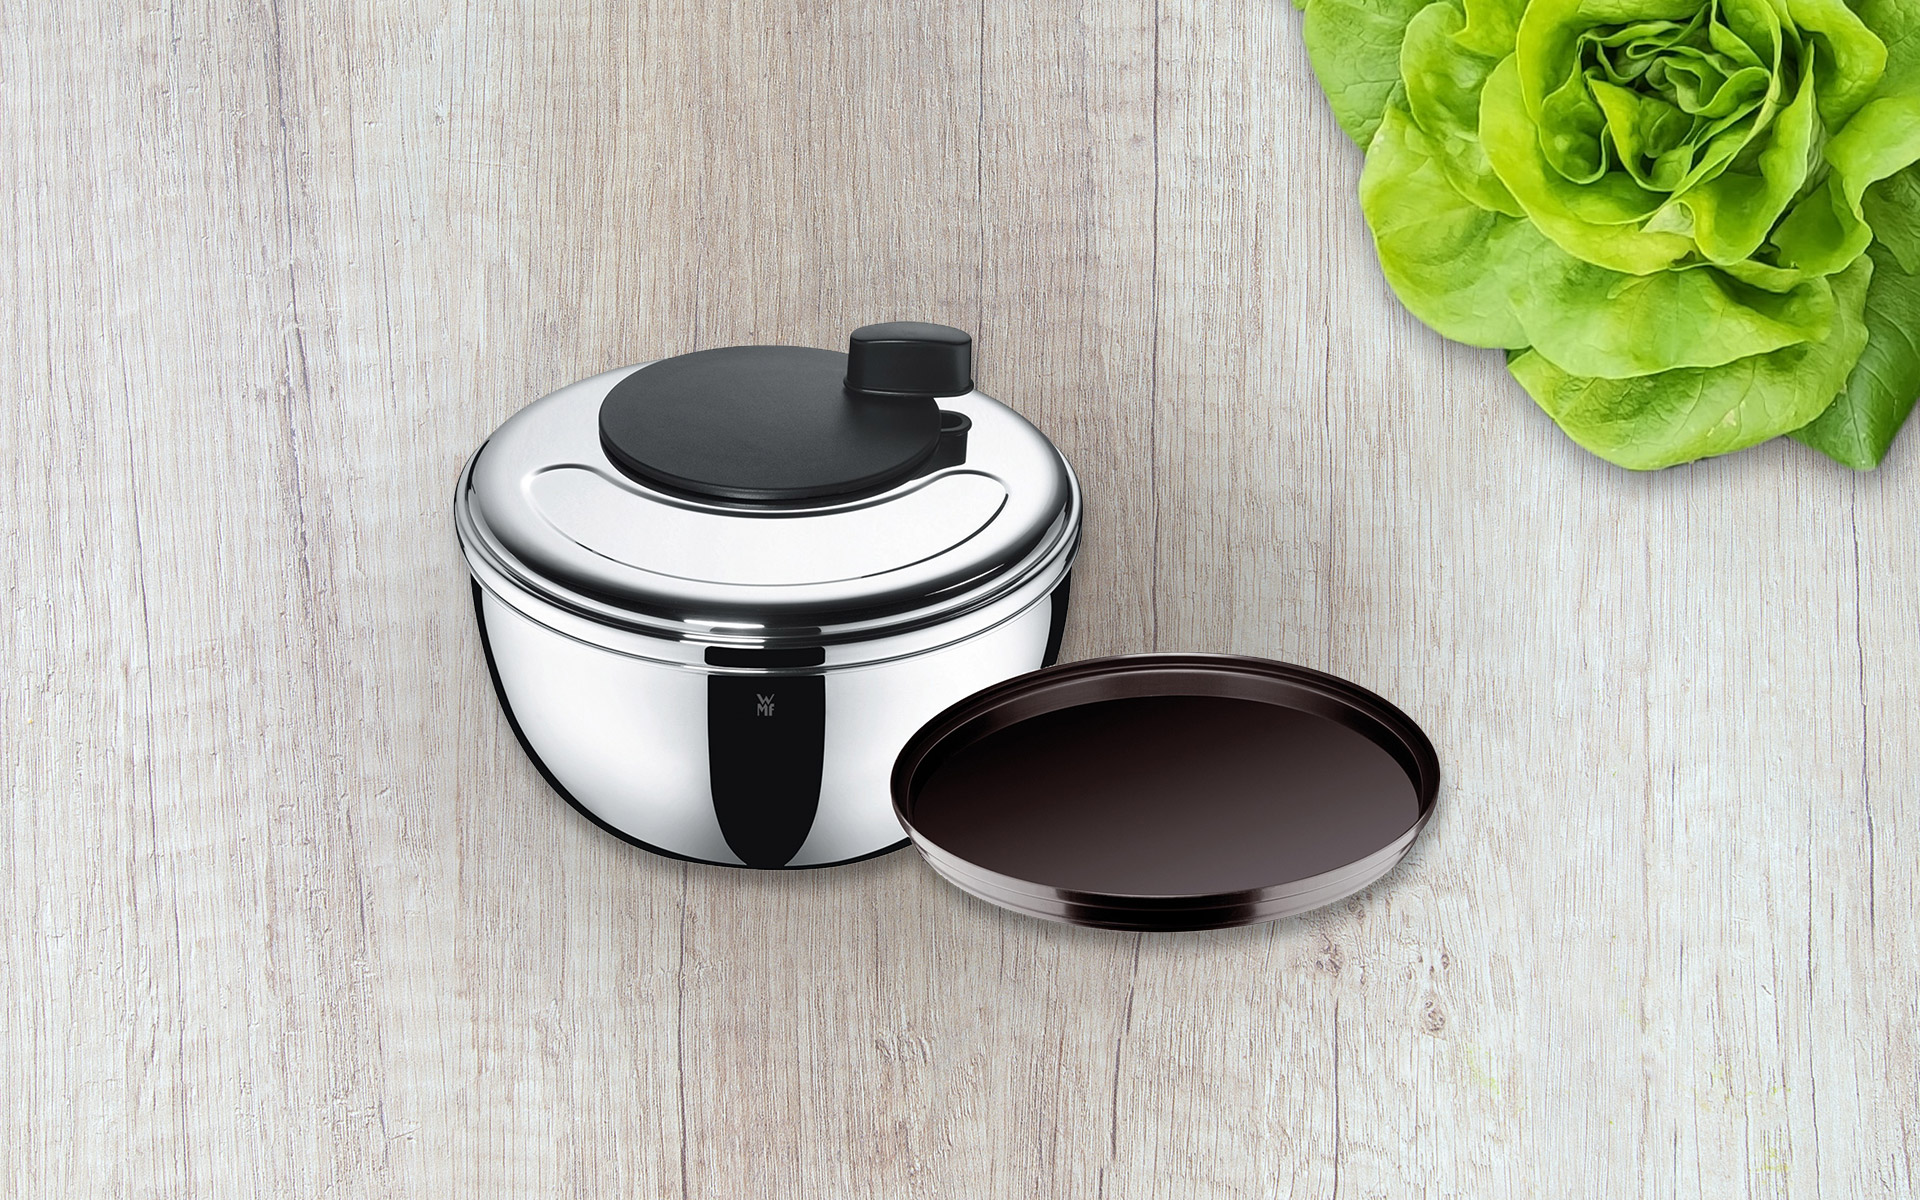 Win one of 5 WMF salad spinners GOURMET